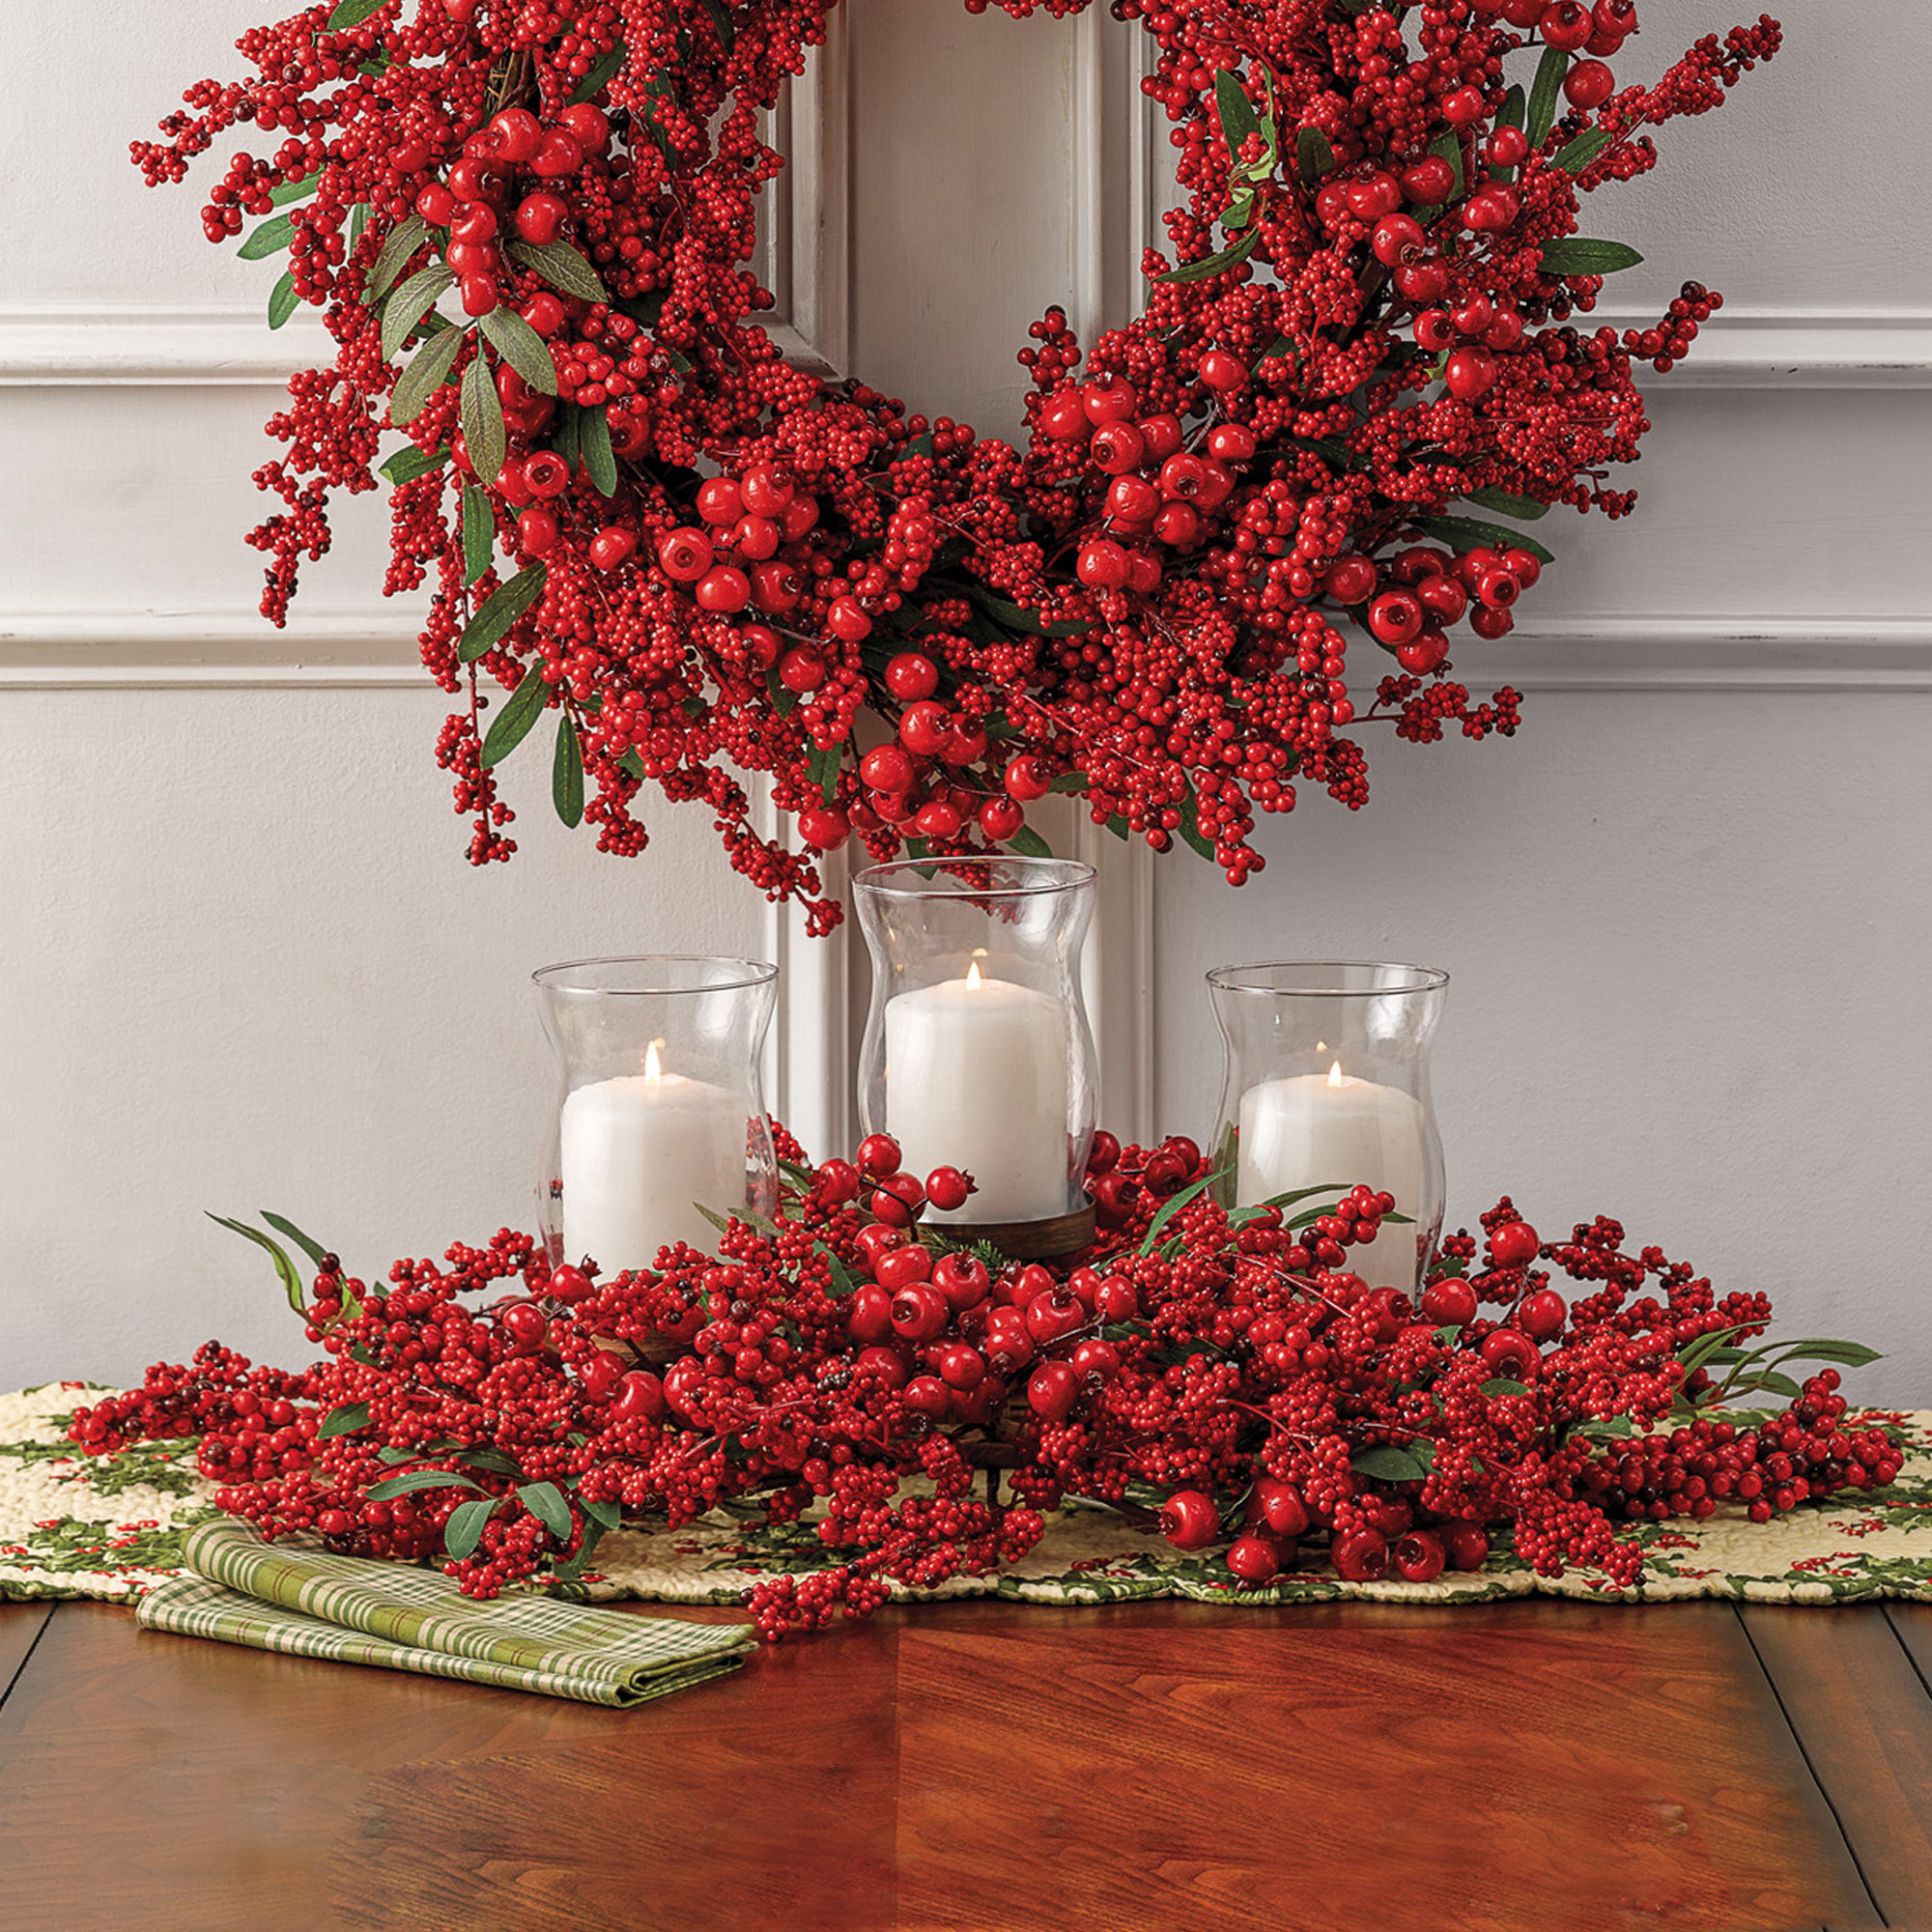 Merry Berry Christmas Hurricane Centerpiece